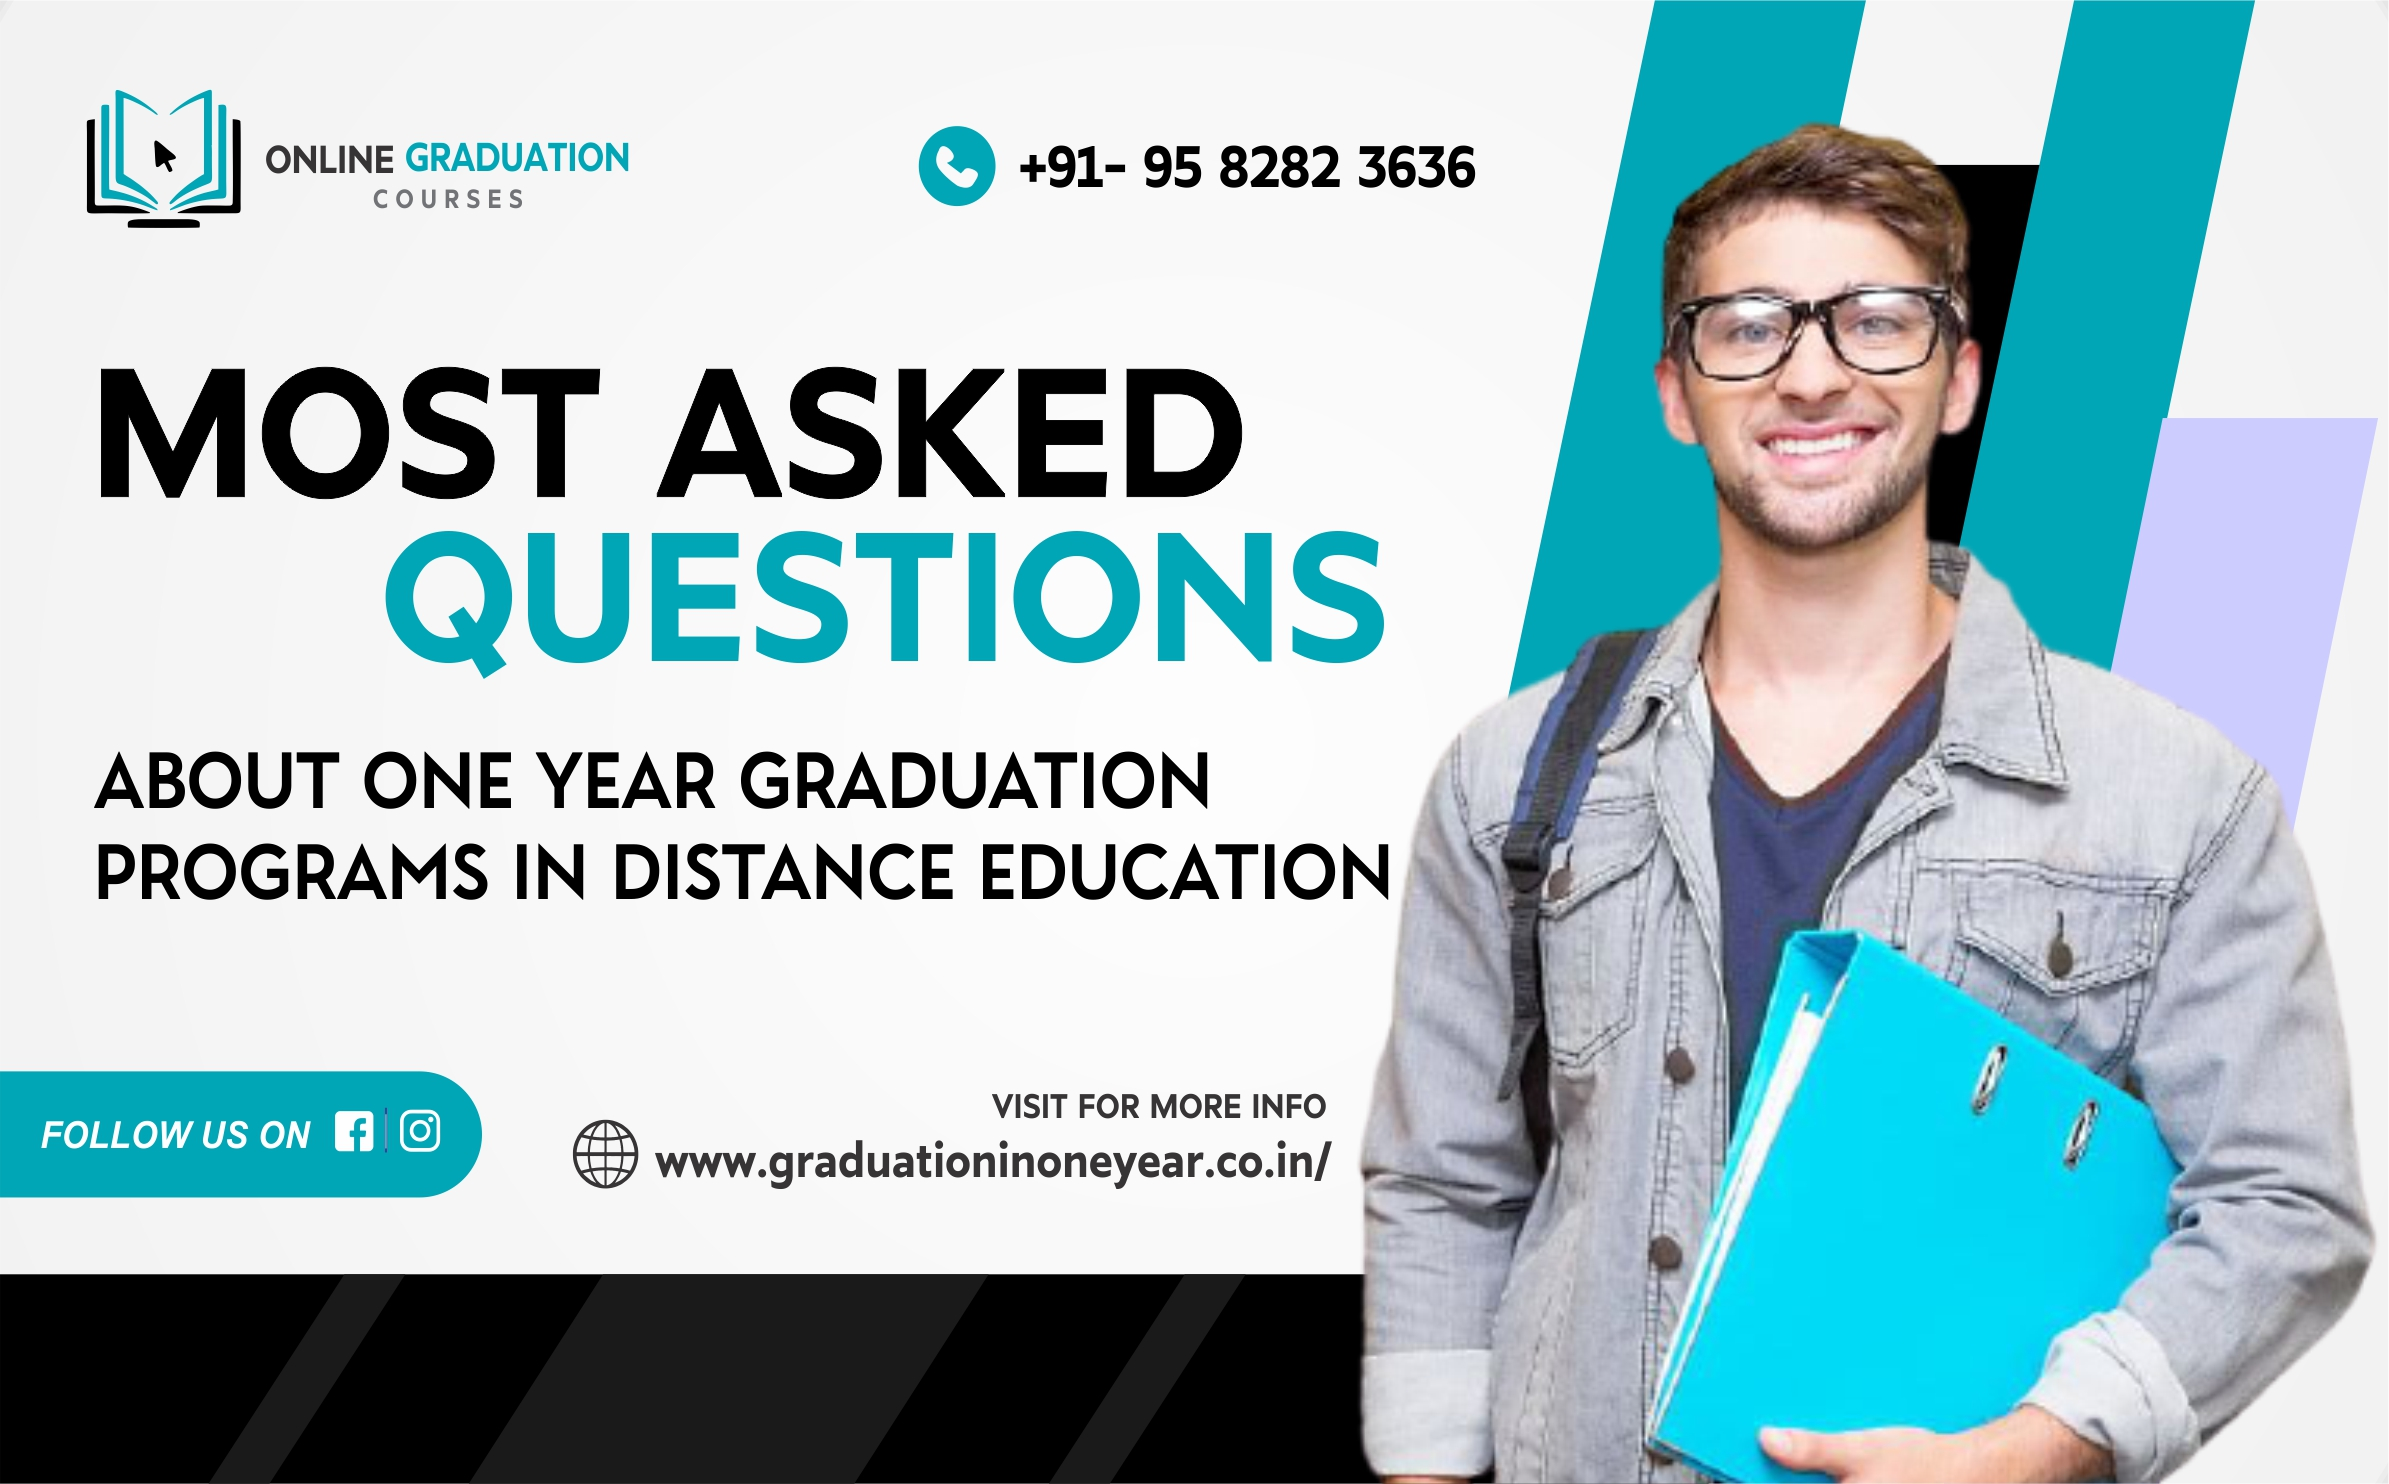 One Year Graduation Programs in Distance Education